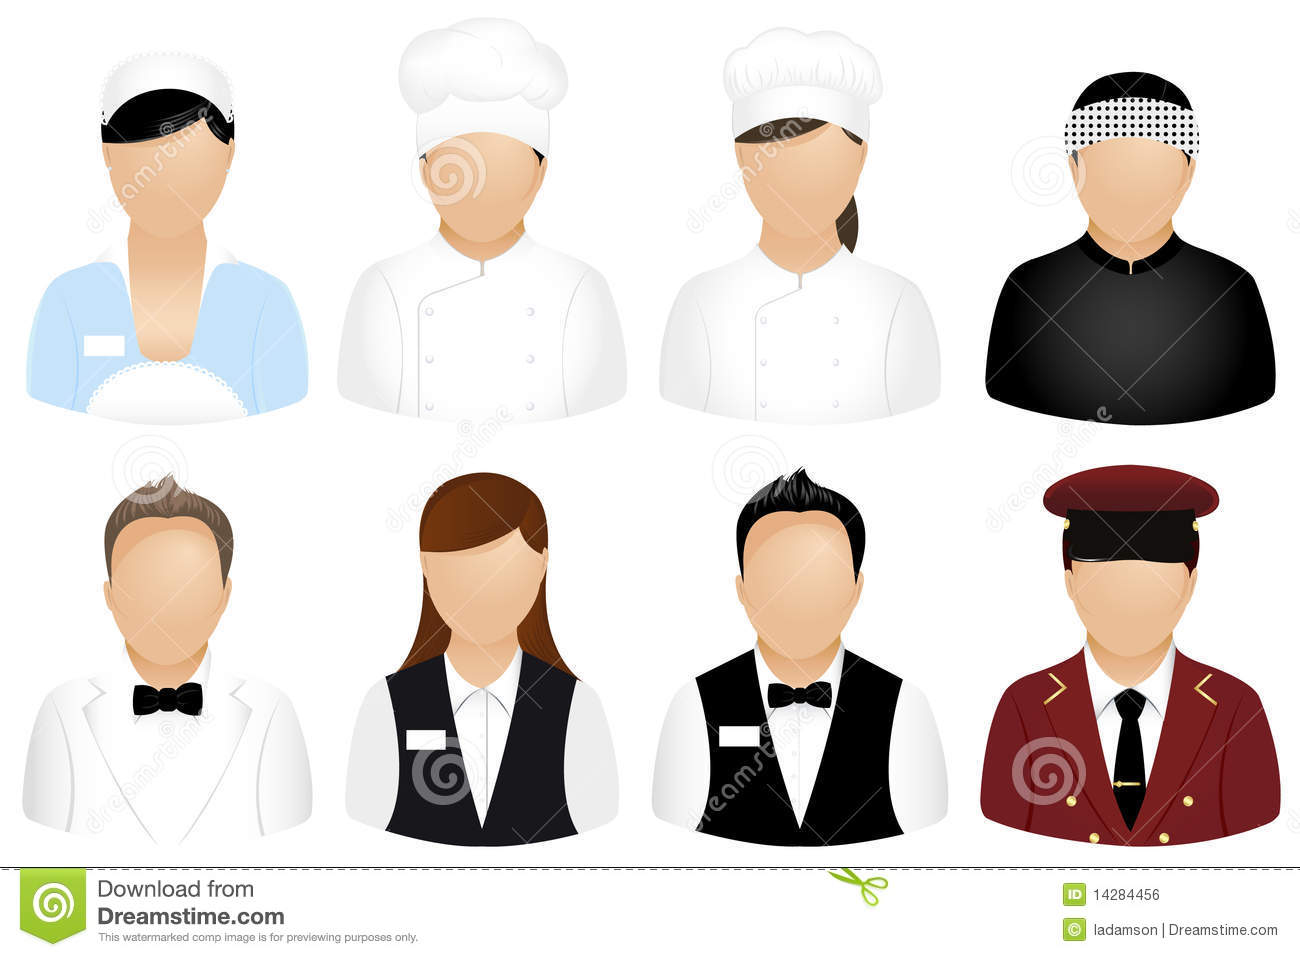 Restaurant manager clipart clipart free stock Restaurant Clipart Free Download   Free download best ... clipart free stock